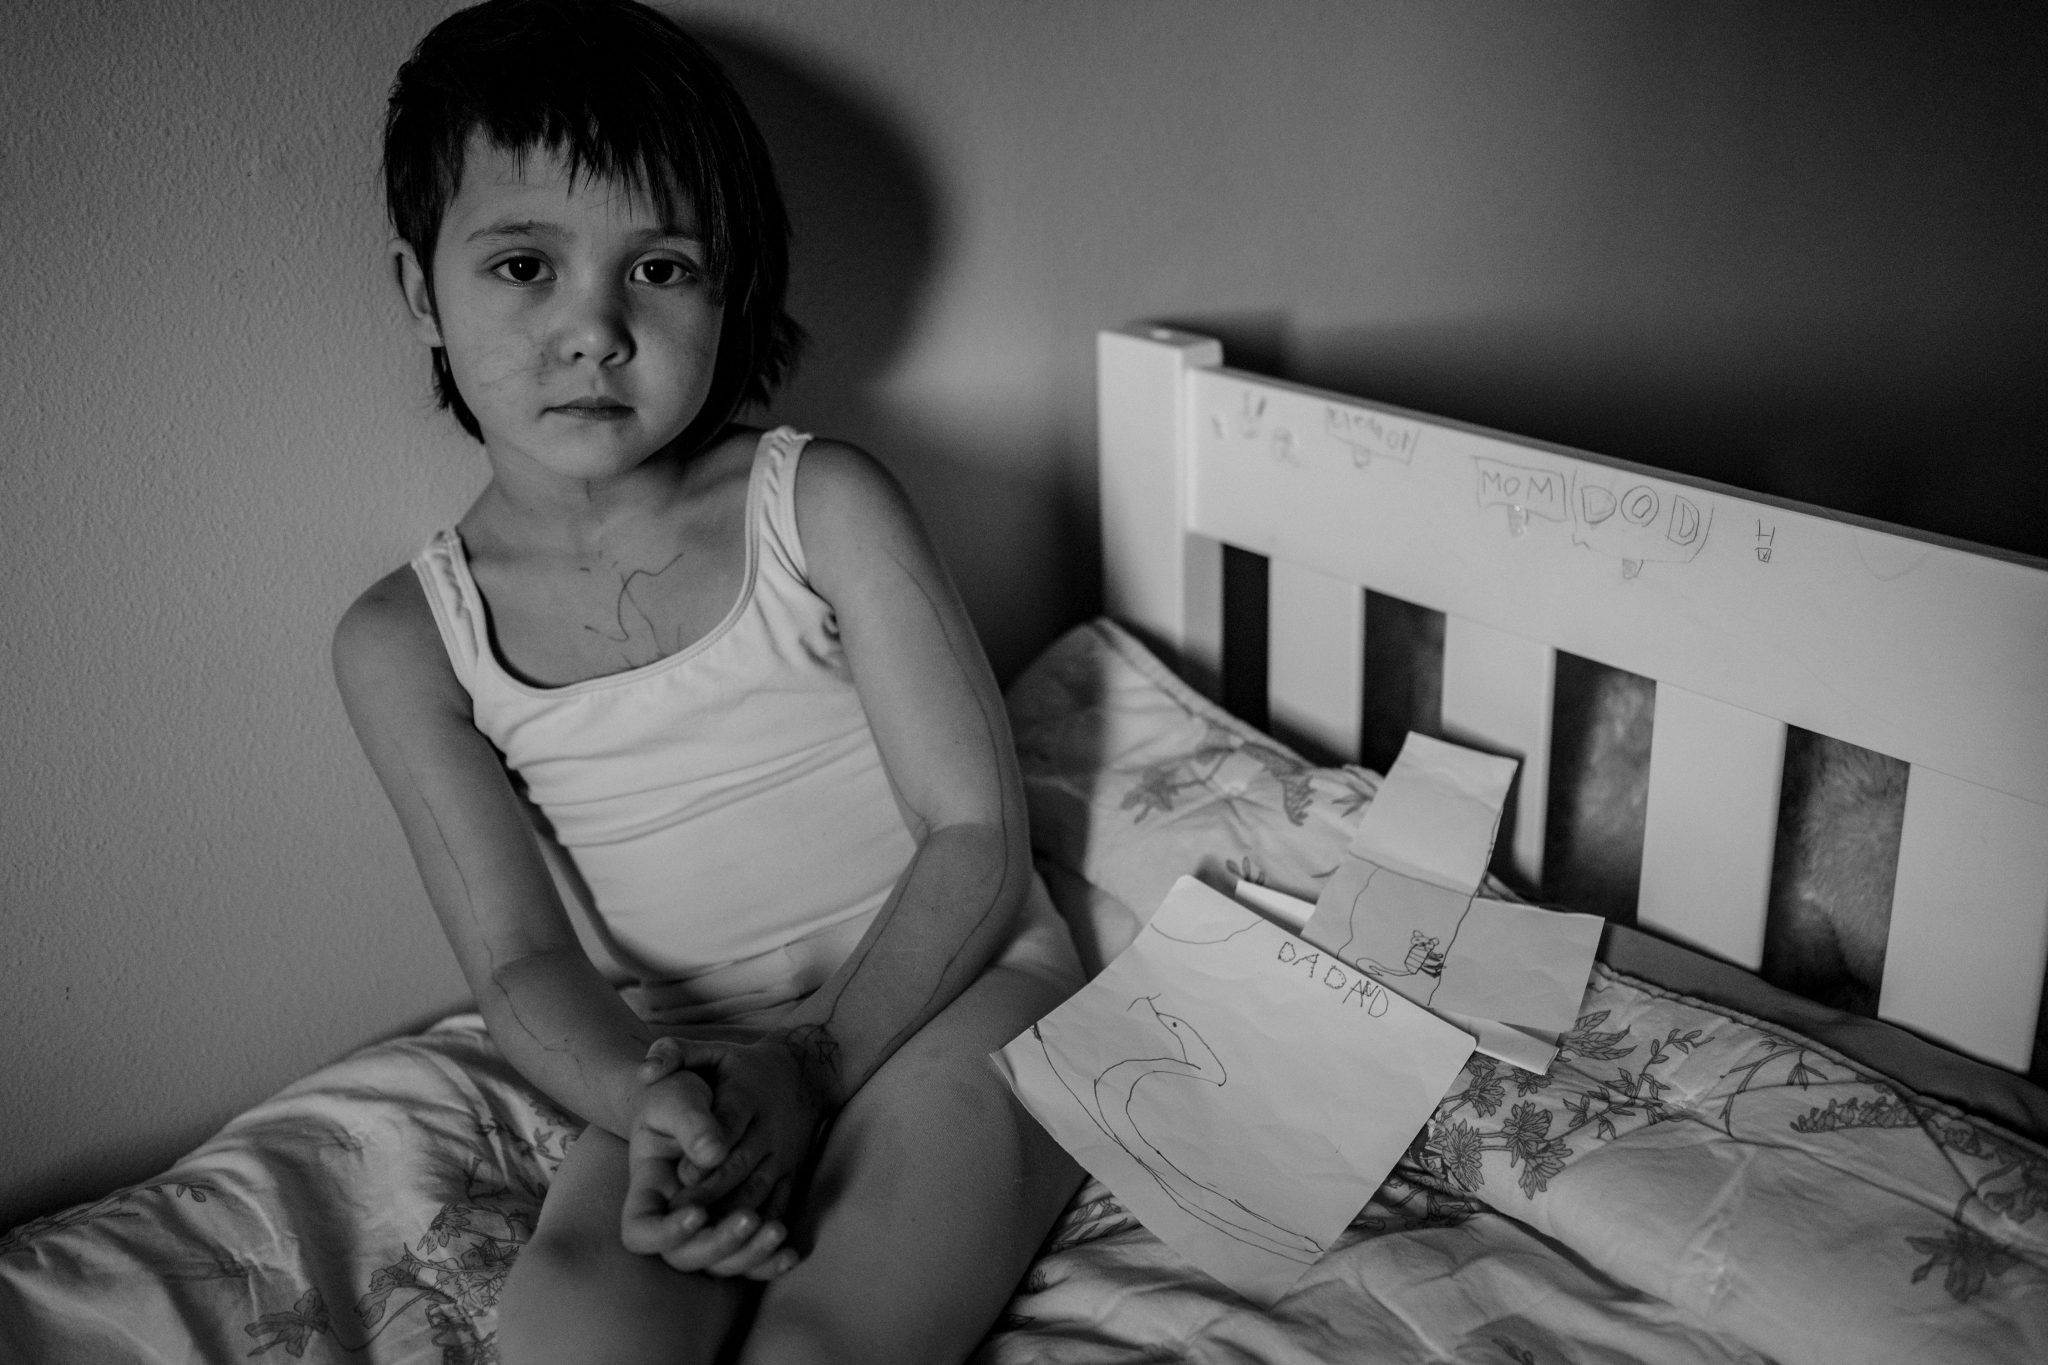 portrait of girl on her bed with writing on her face